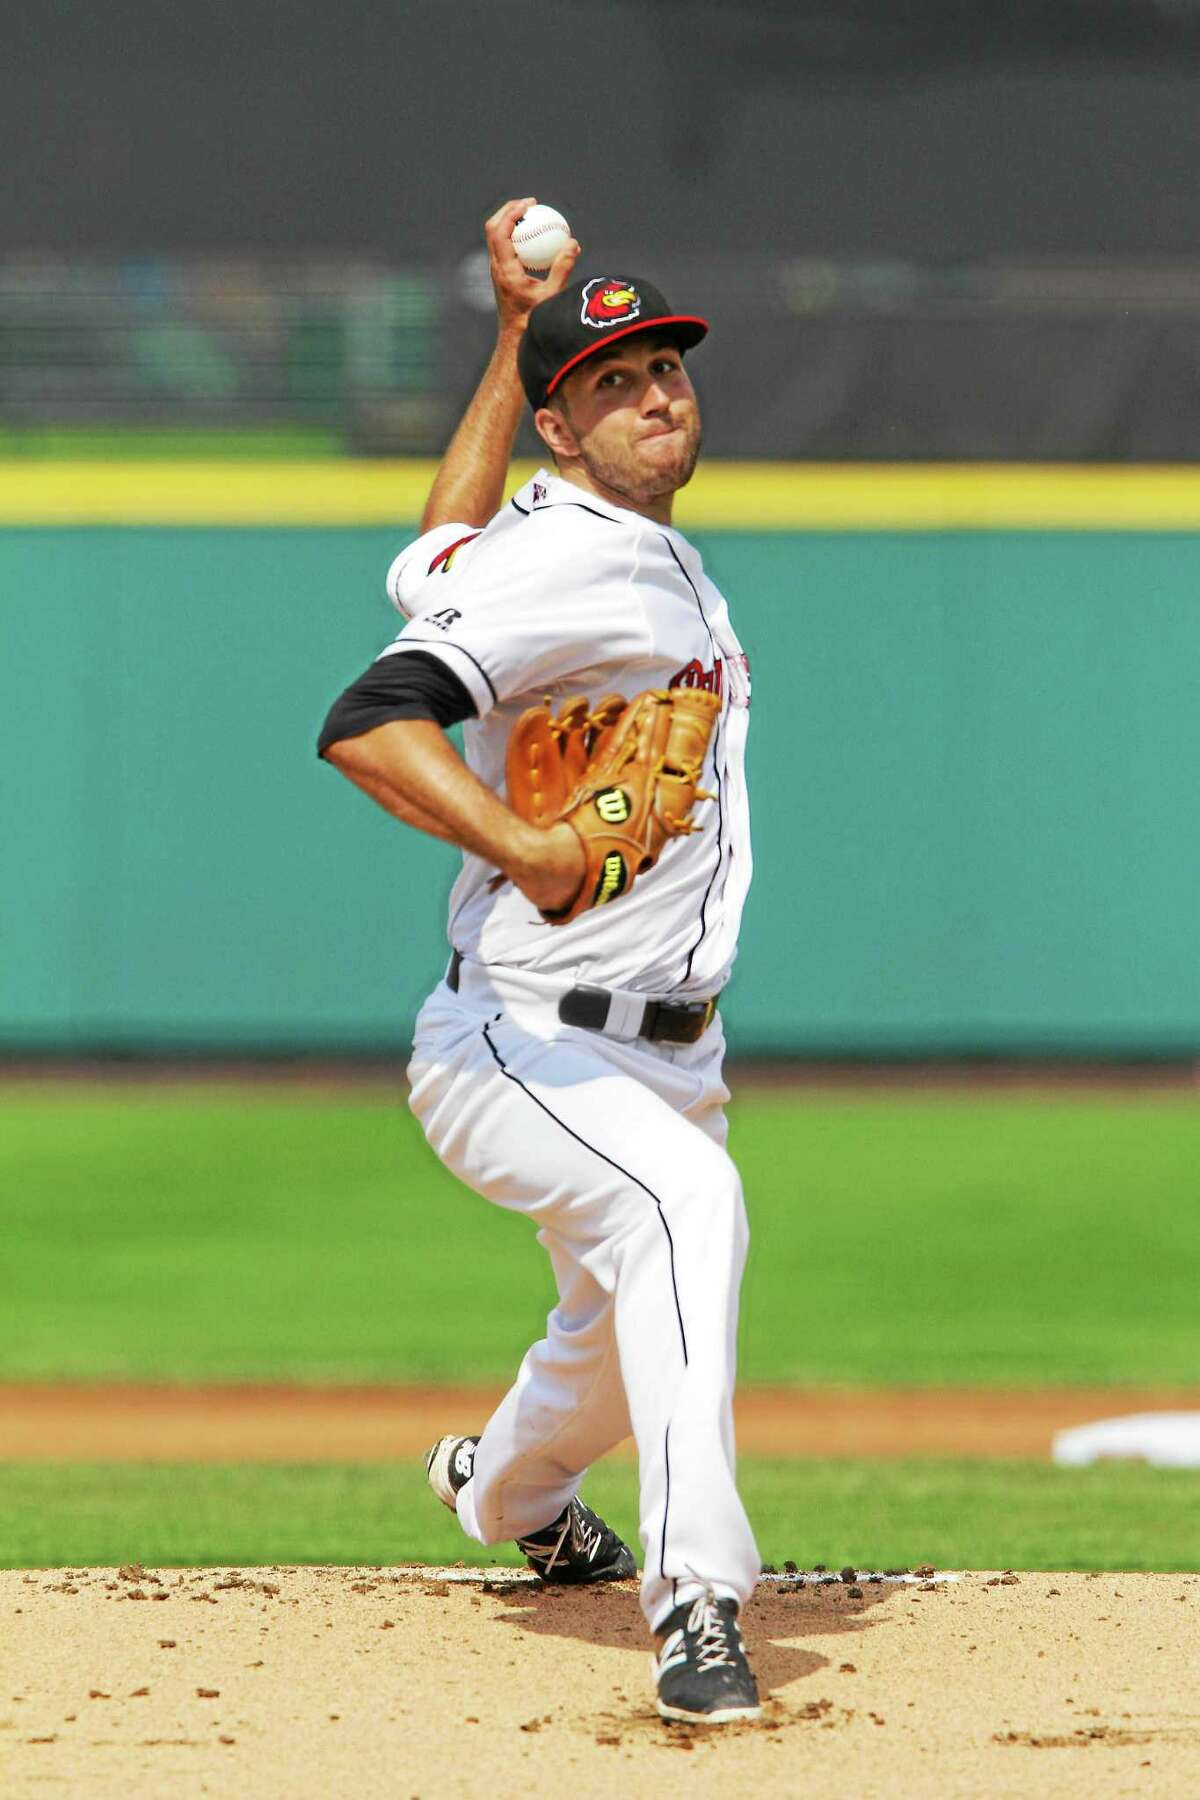 Naugatuck native Pat Dean is figuring things out this year with Triple-A Rochester.